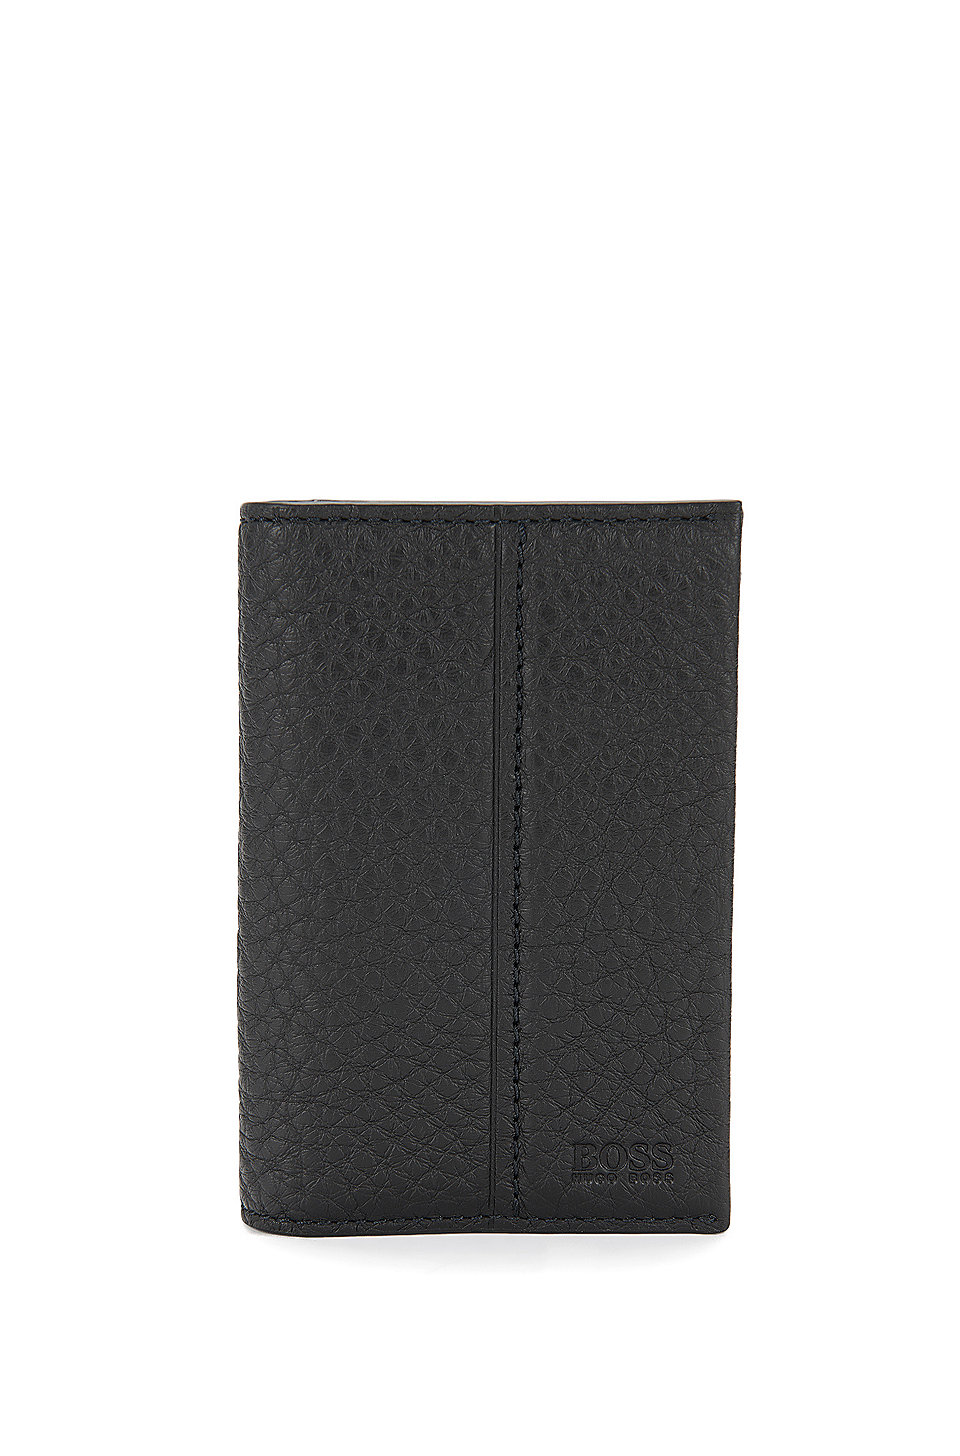 BOSS - Traveller Collection card holder in grained leather